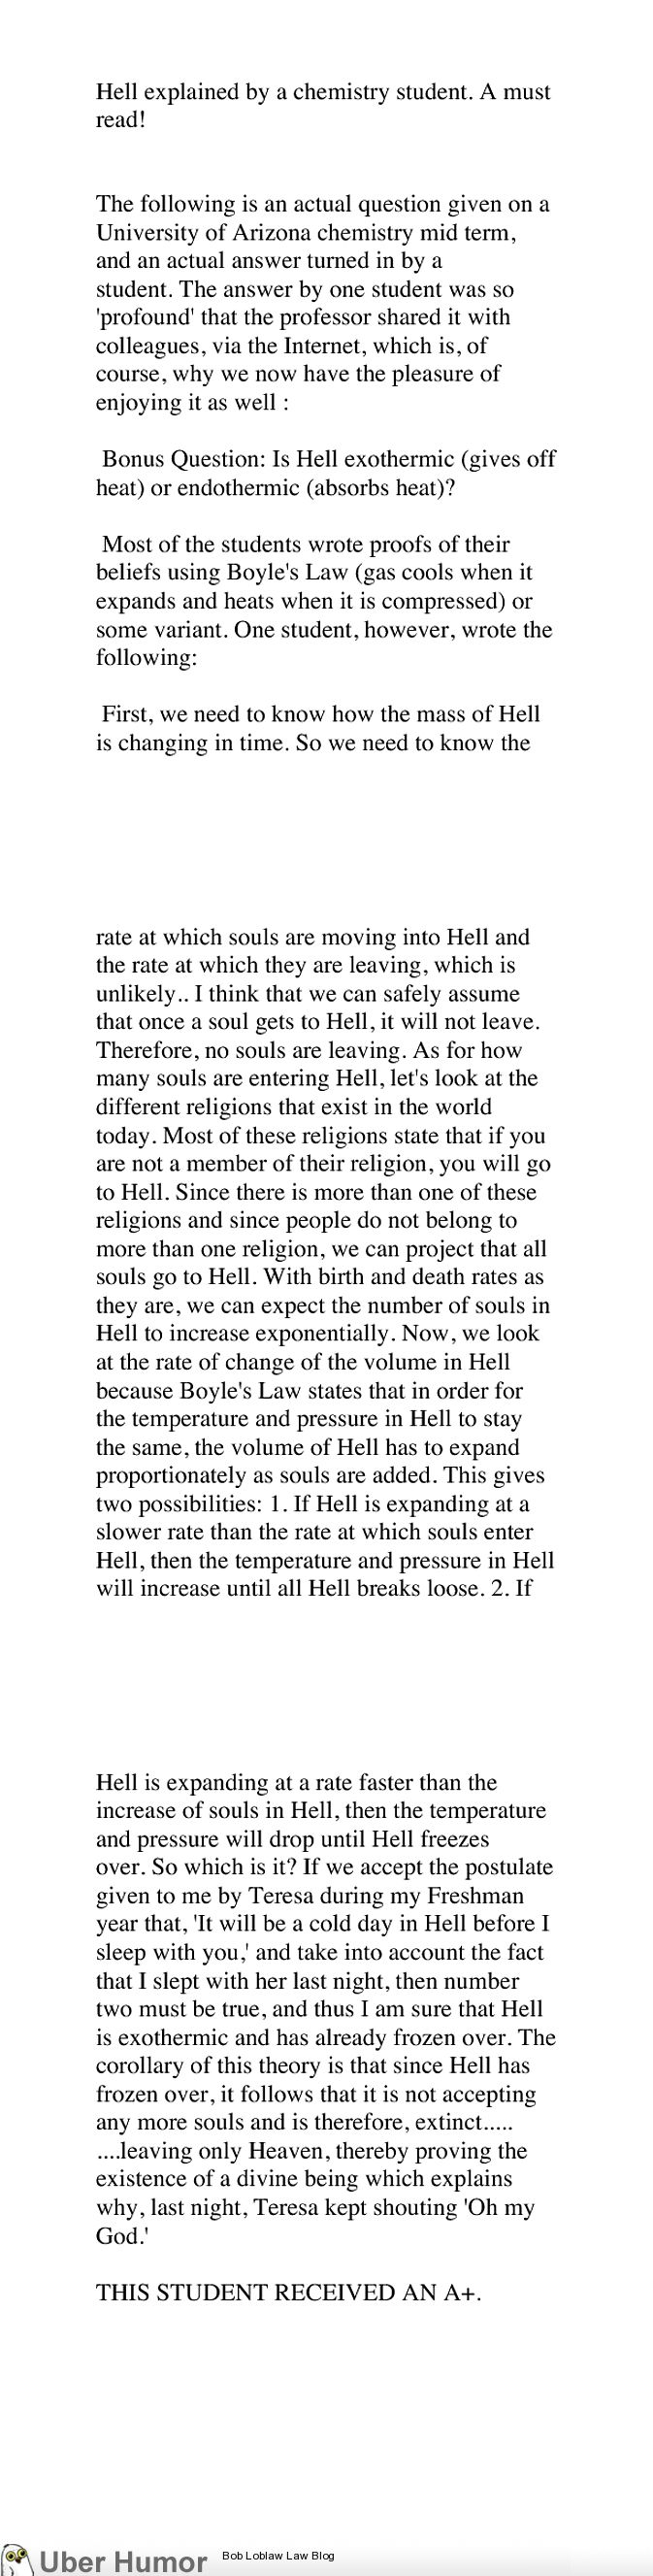 Hell explained by a Chemistry student. This is so perfect I don't even understand.